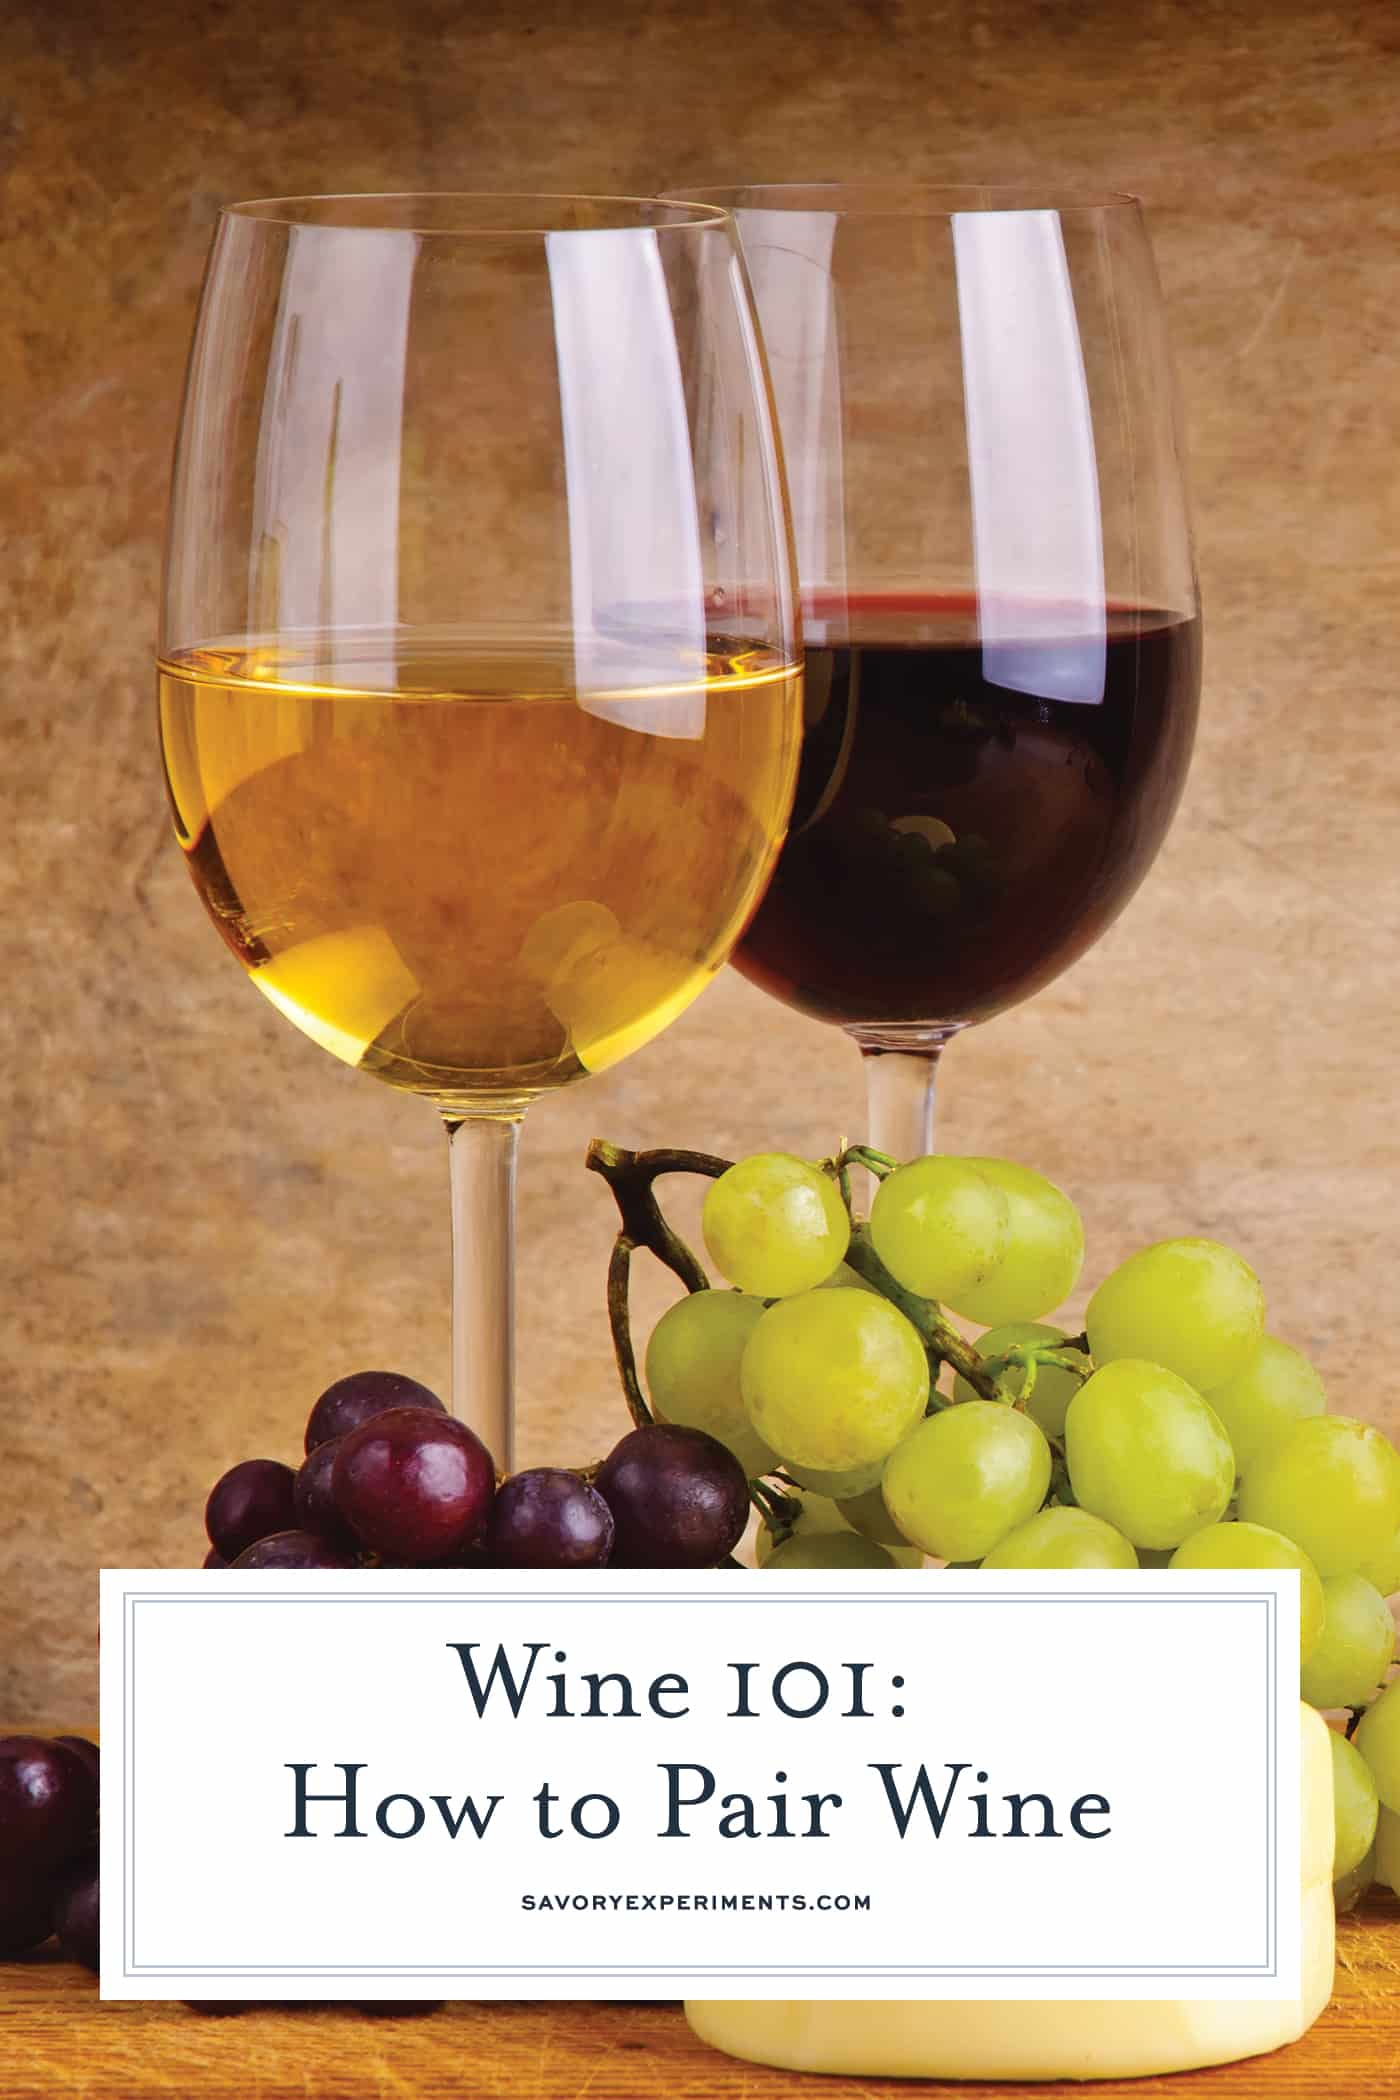 Wine 101: How to expertly pair wine with food without being a sommelier. Learn a few party tricks and pair like a pro! #howtopairwine www.savoryexperiments.com